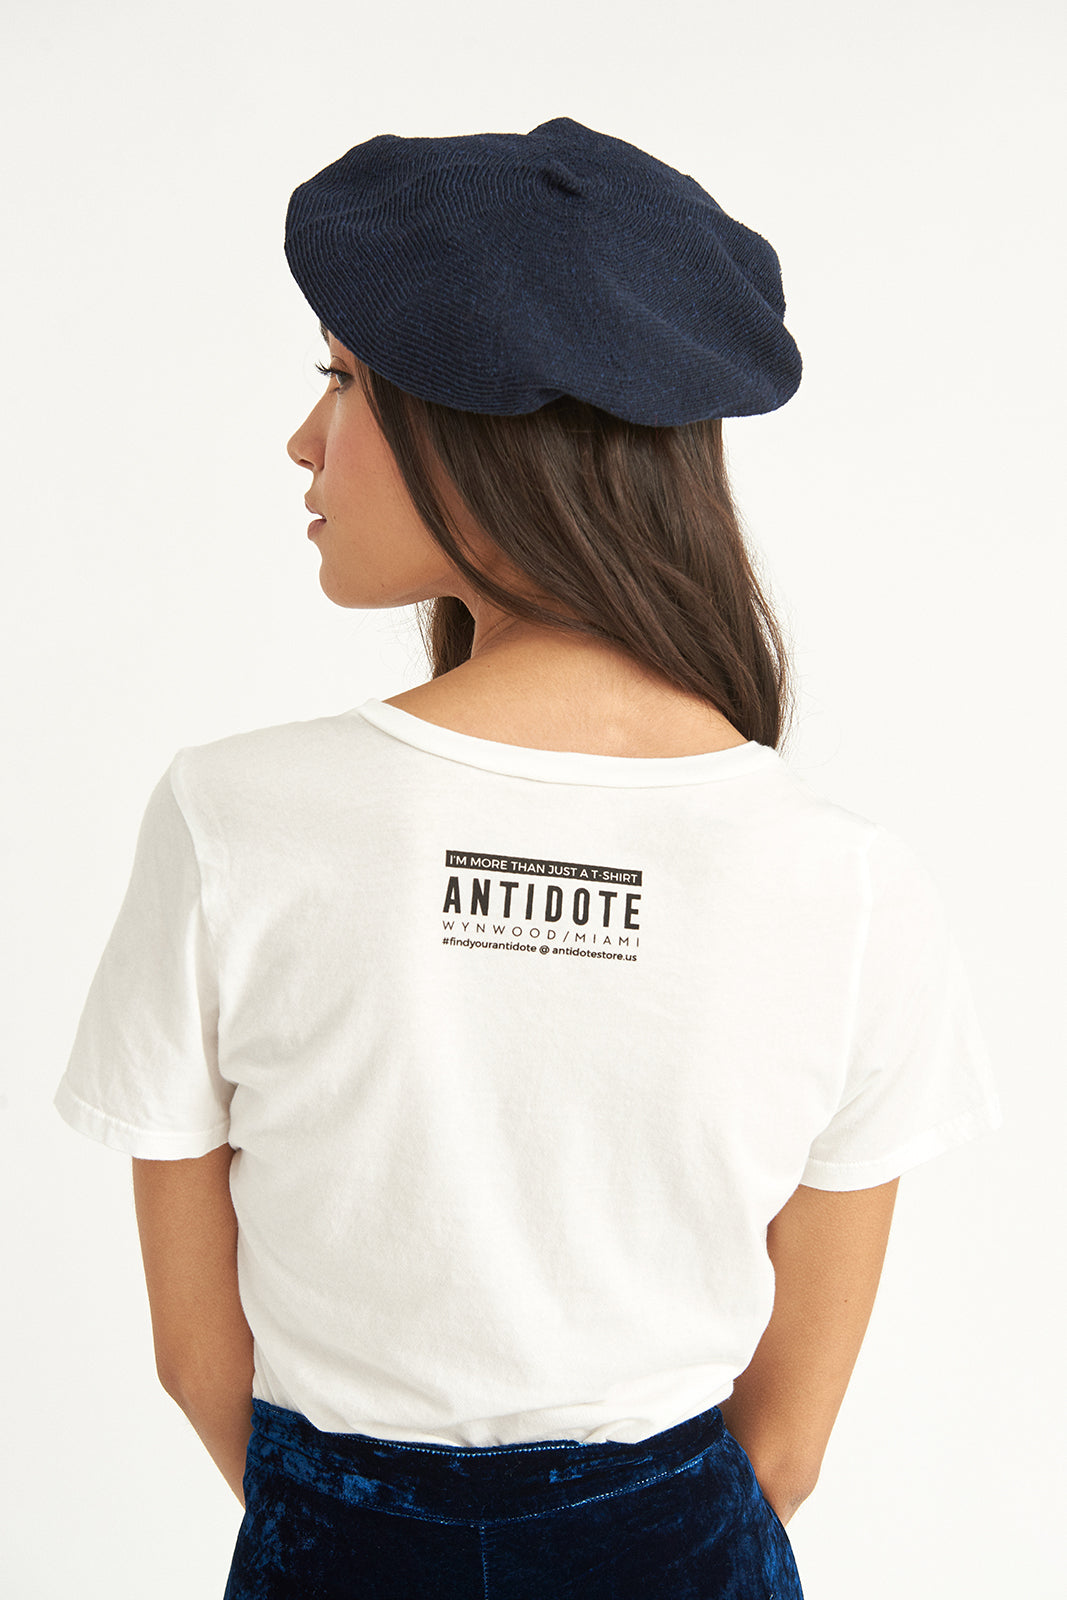 je t'aime miami_miami_tee_white_crew neck_embroidered_t shirt_antidote